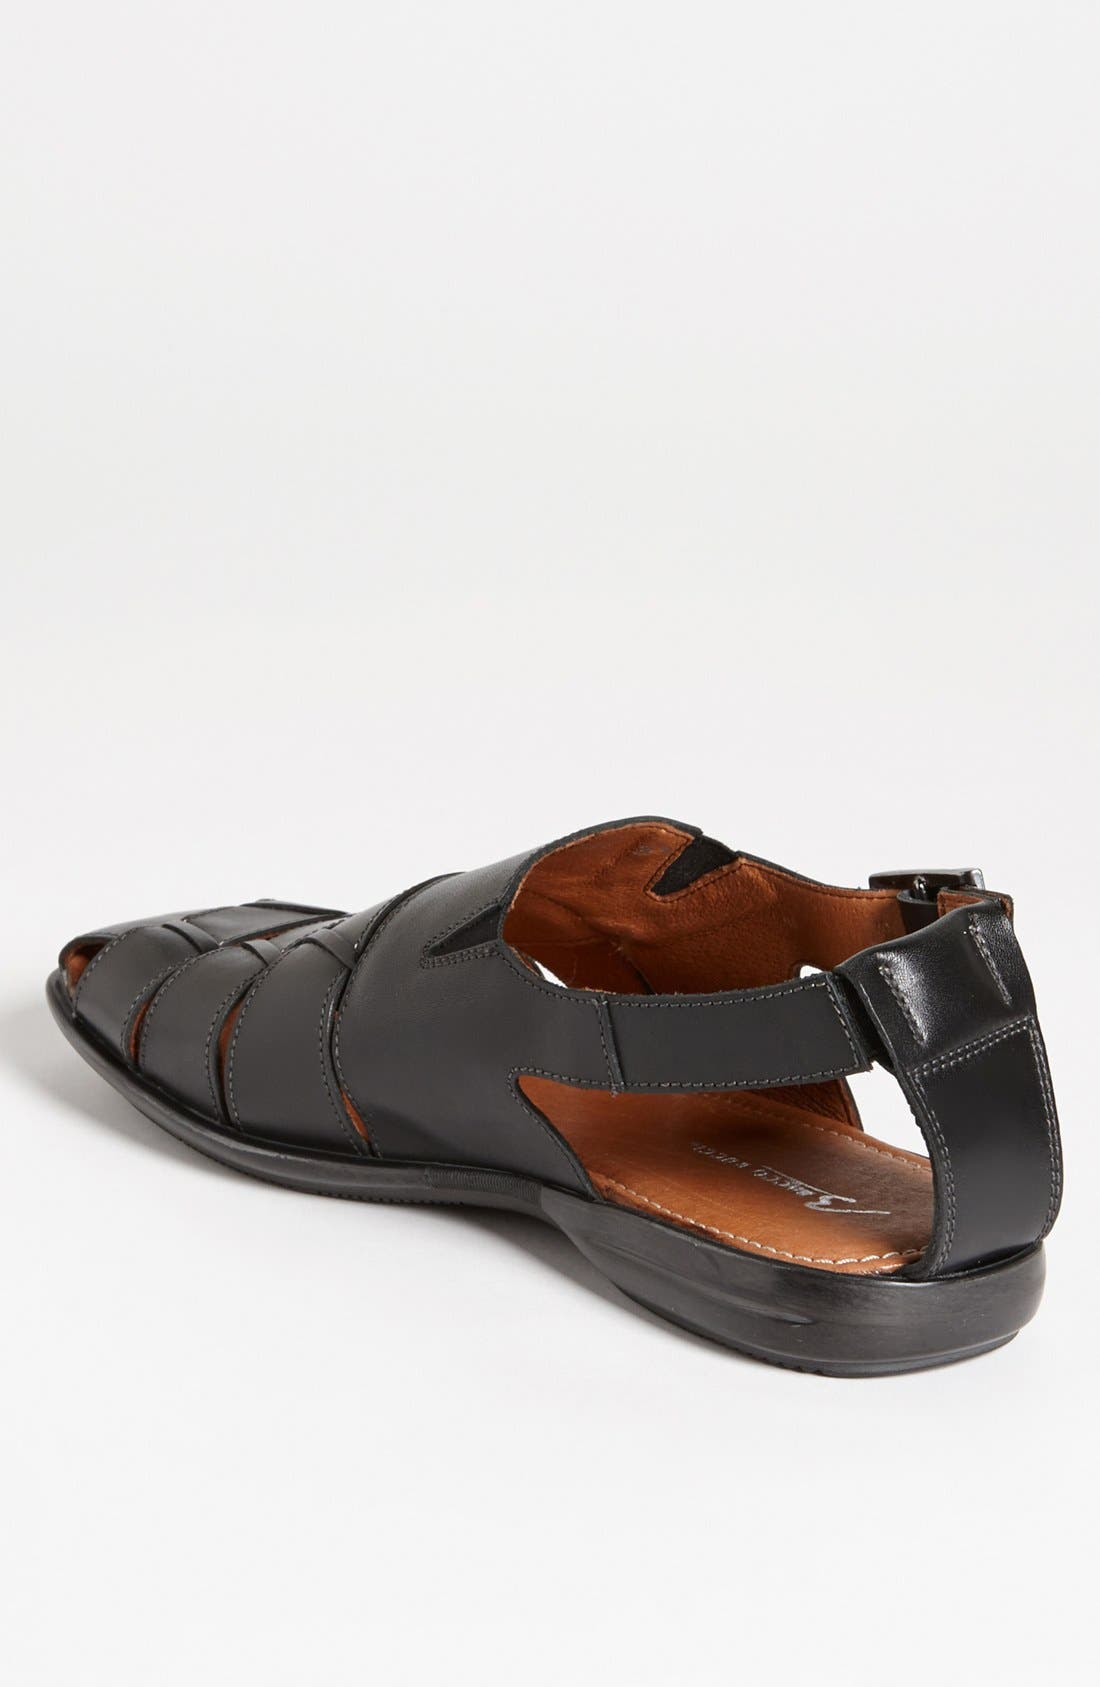 Alternate Image 2  - Bacco Bucci 'Valdano' Sandal (Men)